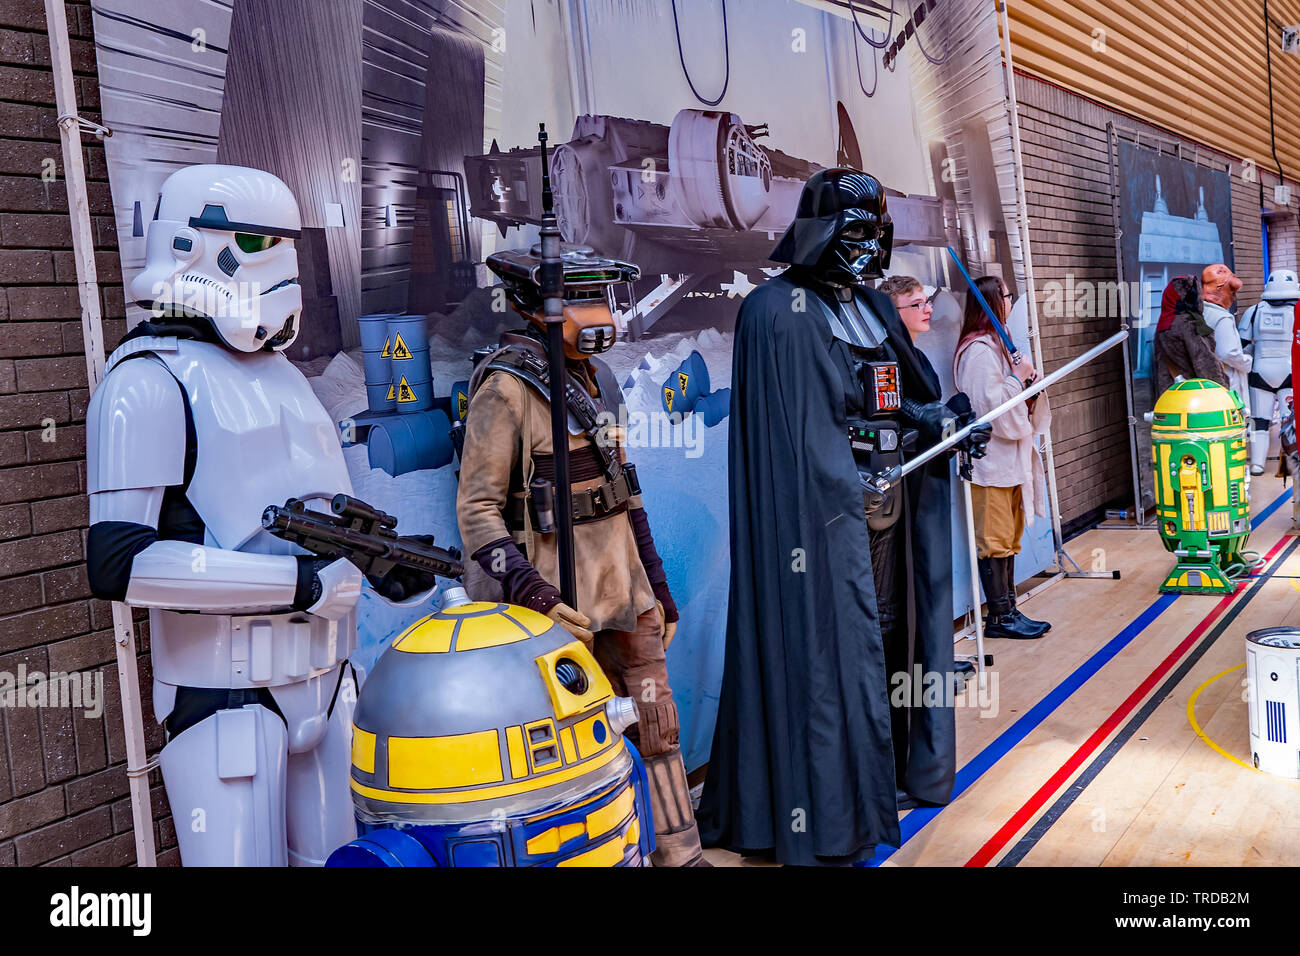 Great Yarmouth Comicon 2019 – A group of people dressed up as characters from the hit film franchise Star Wars posing for photos at the Comicon event - Stock Image